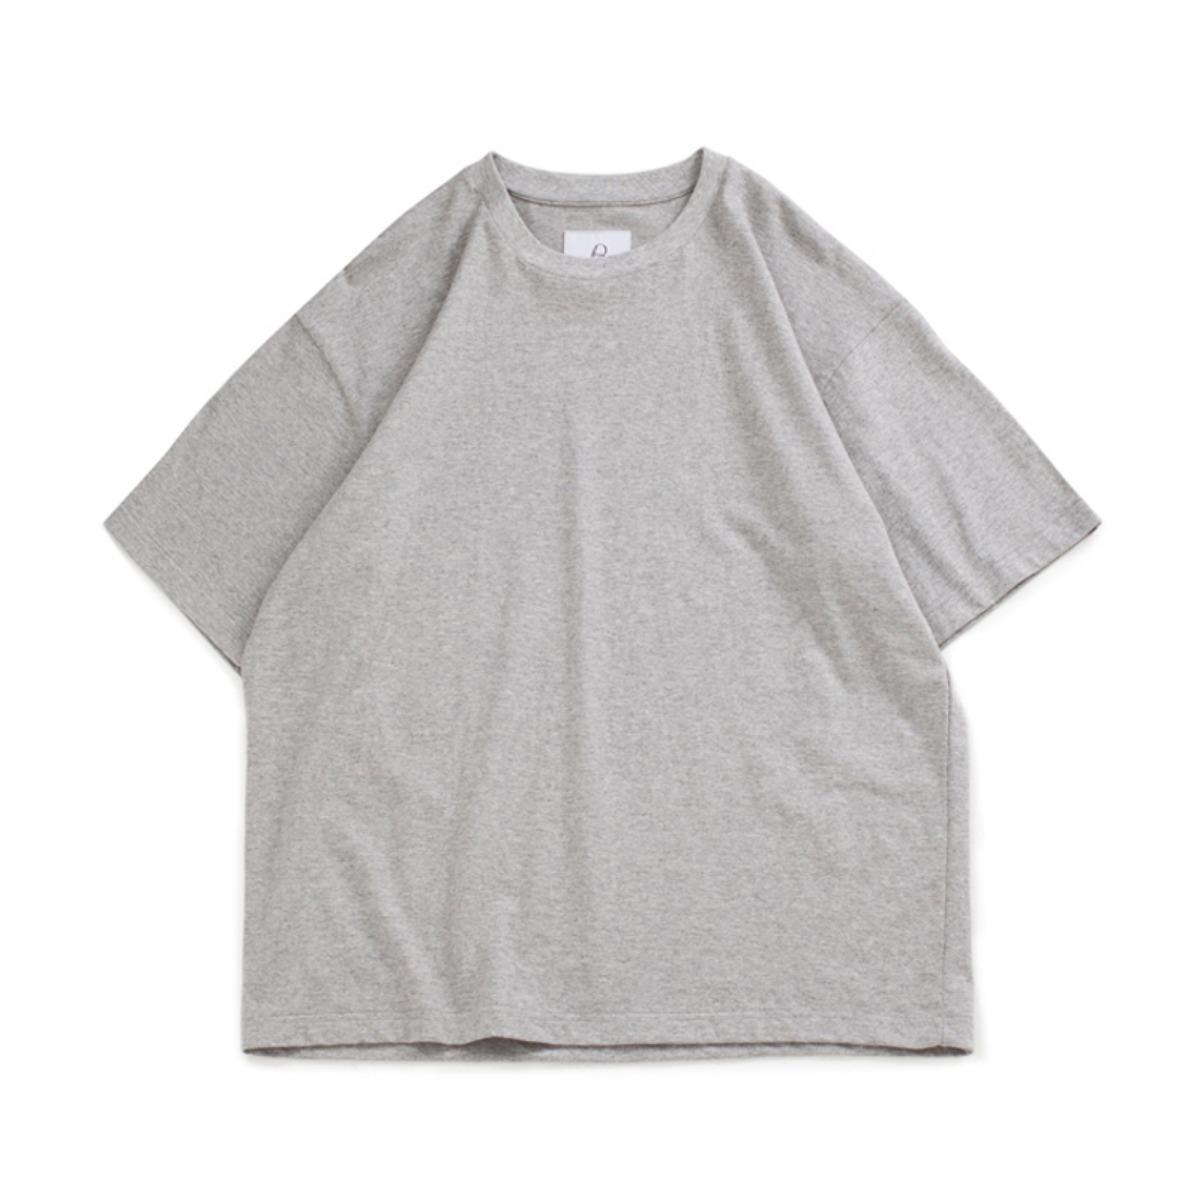 [BROWNYARD] ONE DAY T-SHIRT 'GREY'